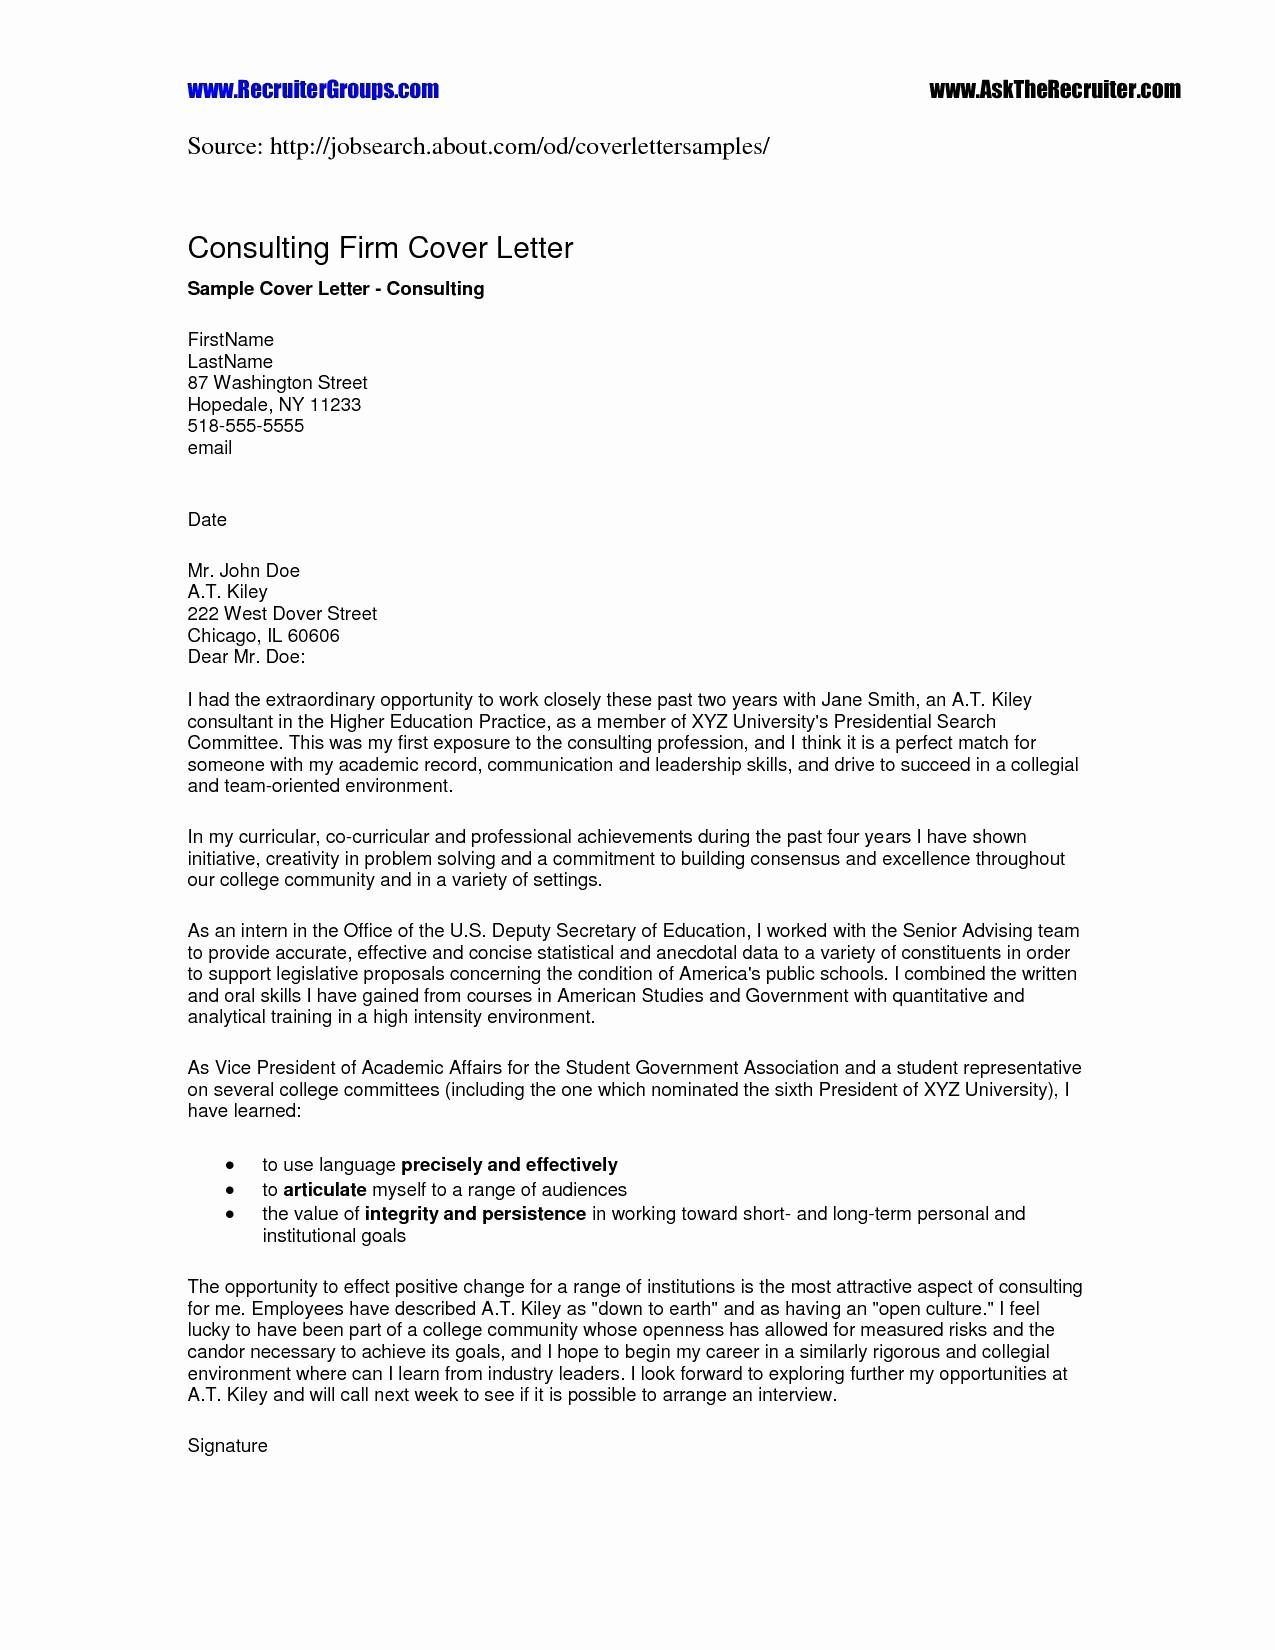 close cover letter - Jasonkellyphoto.co